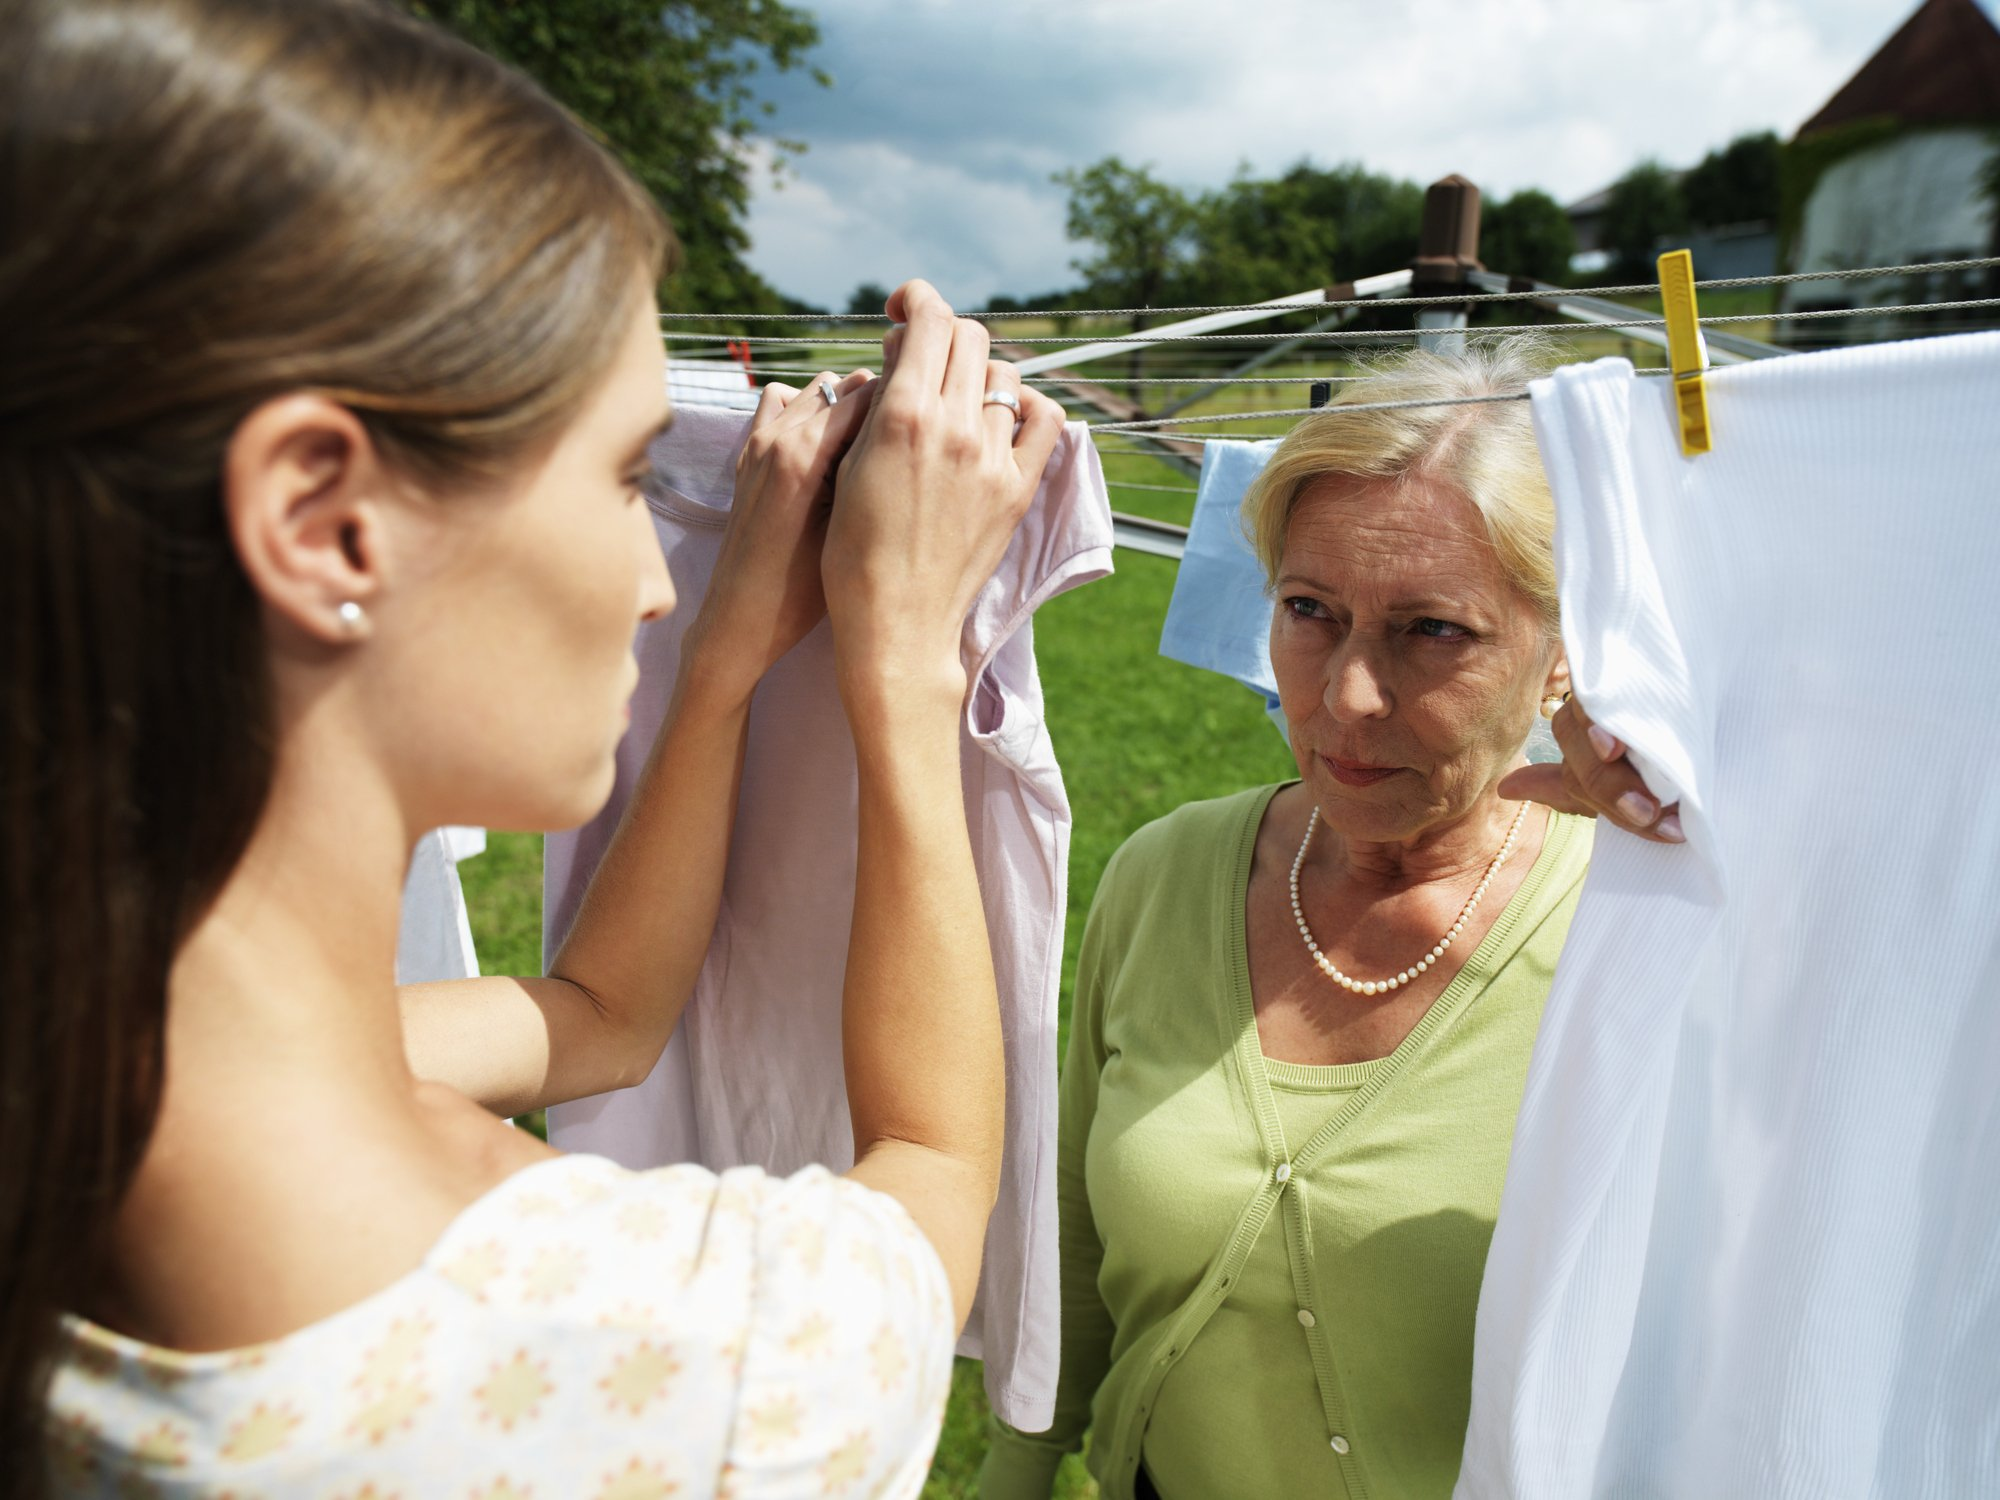 Enraged mother-in-law stares at daughter-in-law who hangs out washed clothes   Photo: Getty Images